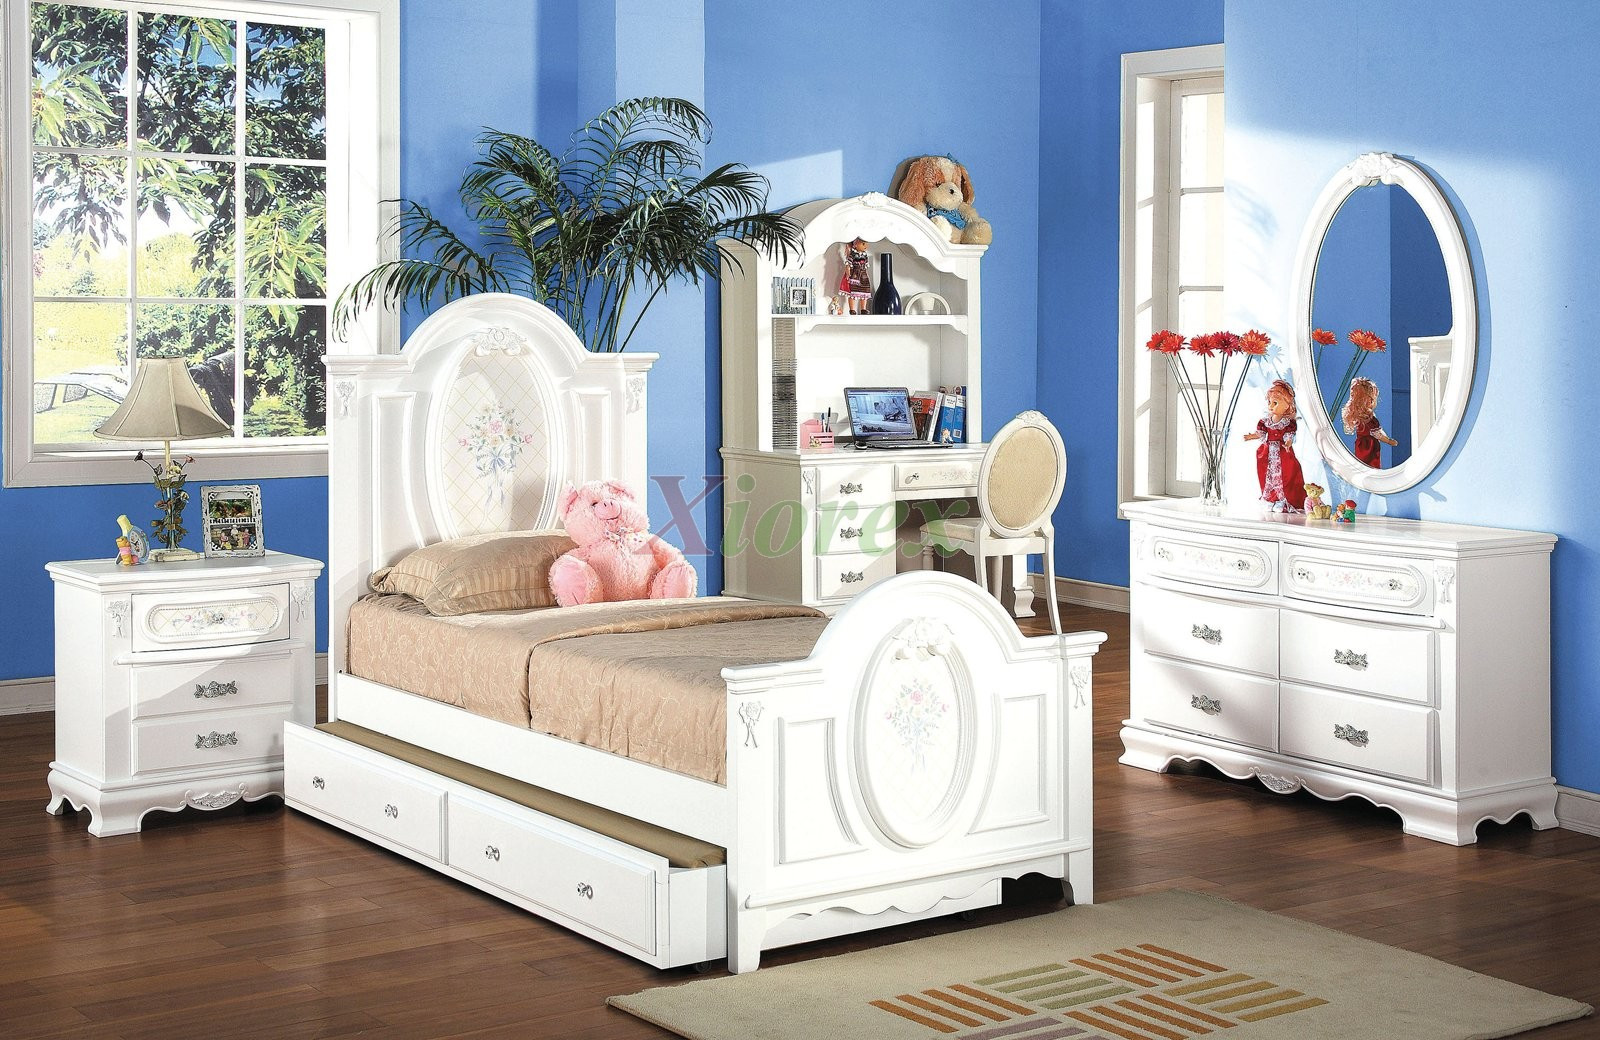 Best ideas about Kids Bedroom Furniture Sets . Save or Pin What to consider in kids bedroom furniture sets – BlogBeen Now.